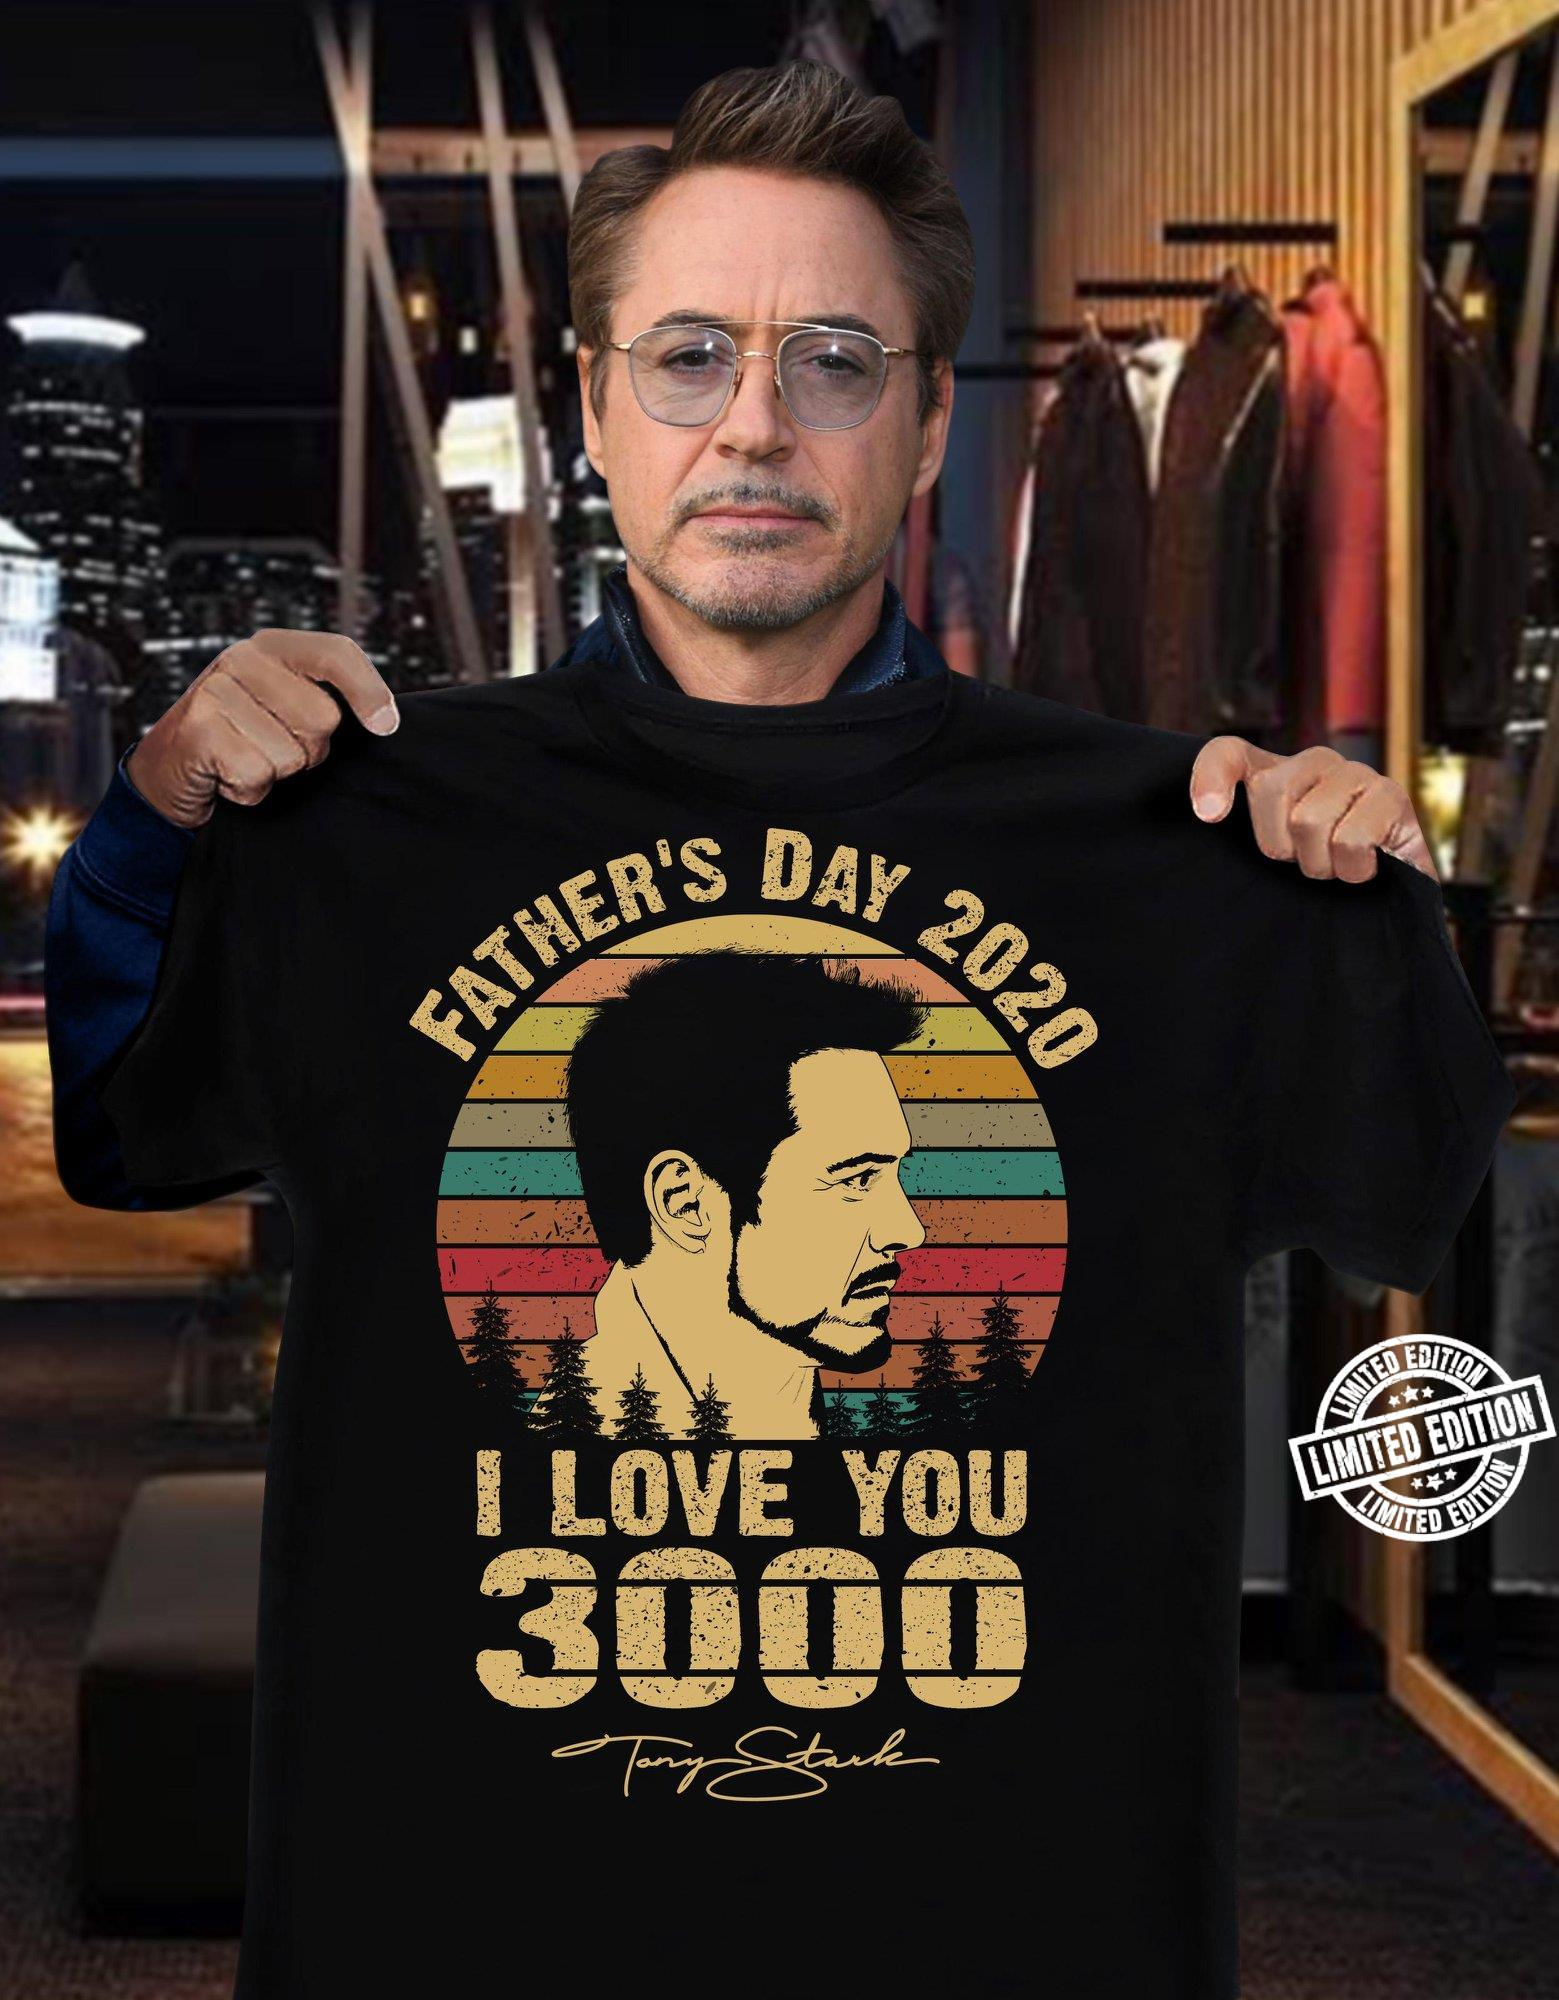 Father's day 2020 i love you 3000 shirt